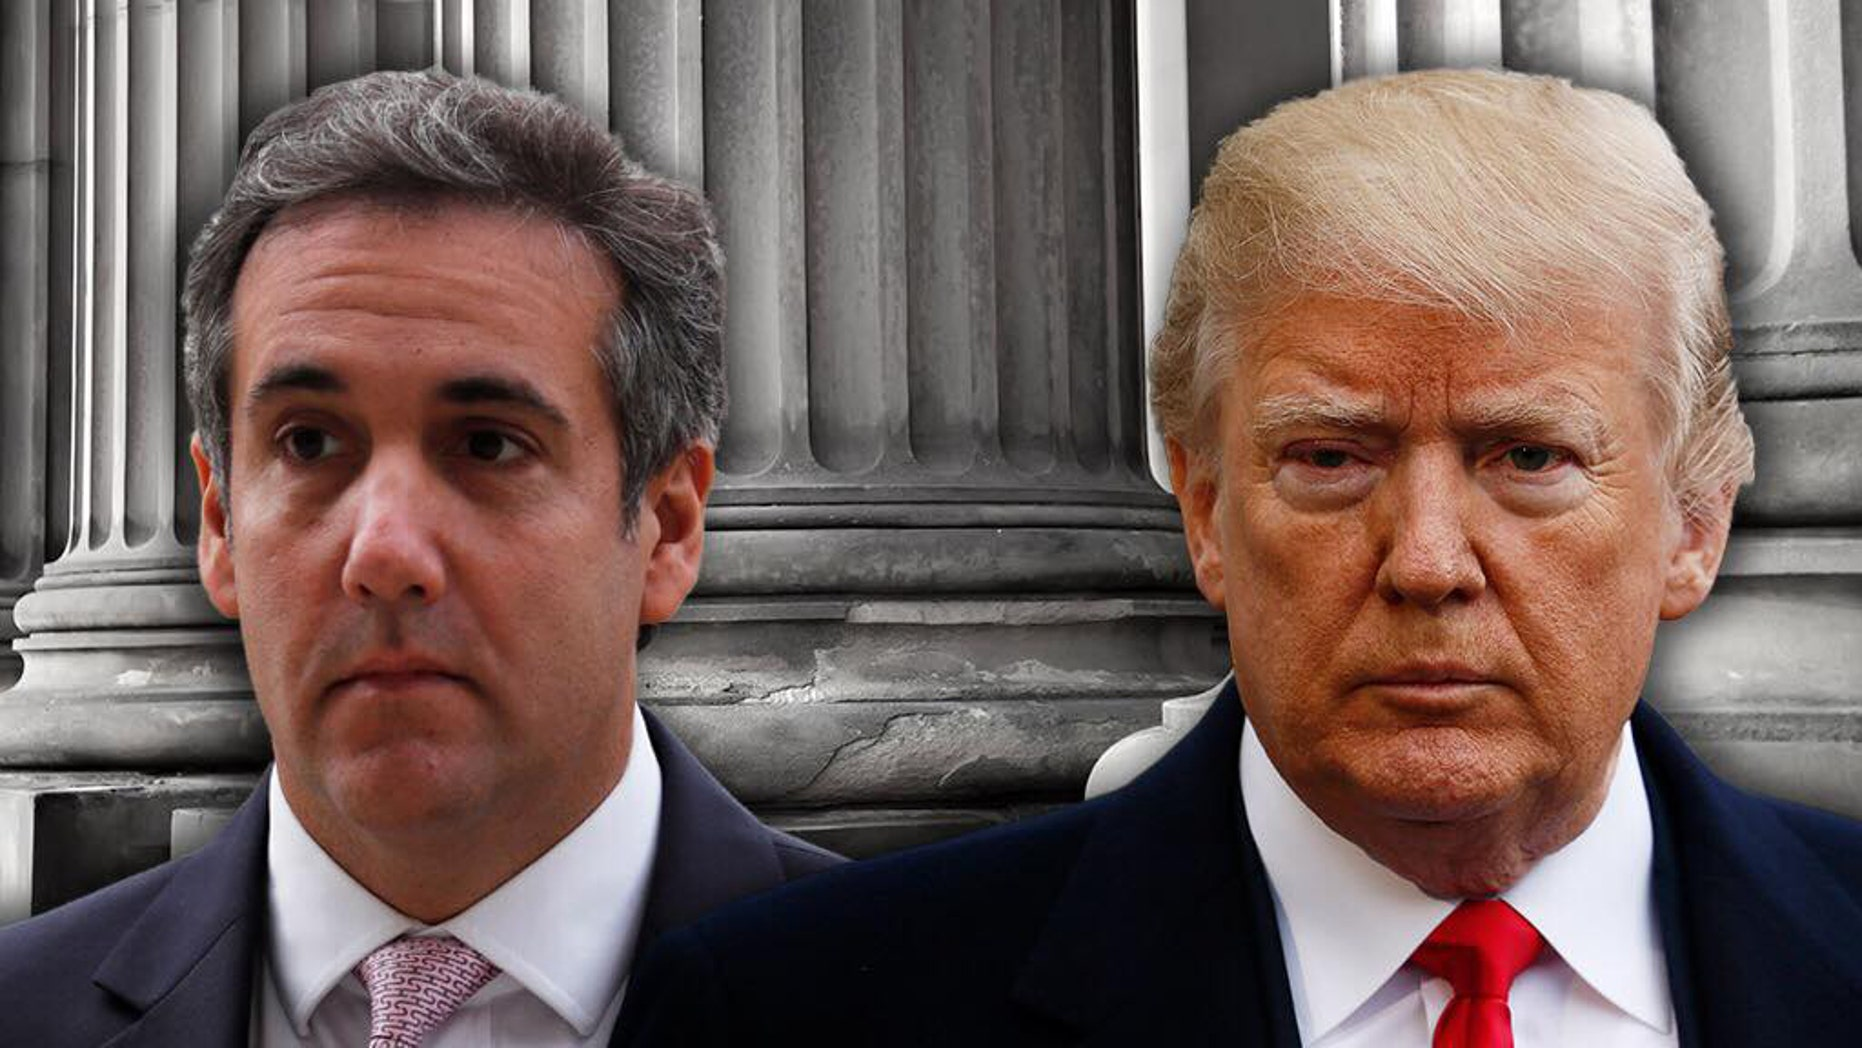 Michael Cohen, left, a former personal counsel for President Trump, is available sentencing after pleading guilty to campaign-finance and rascal charges.